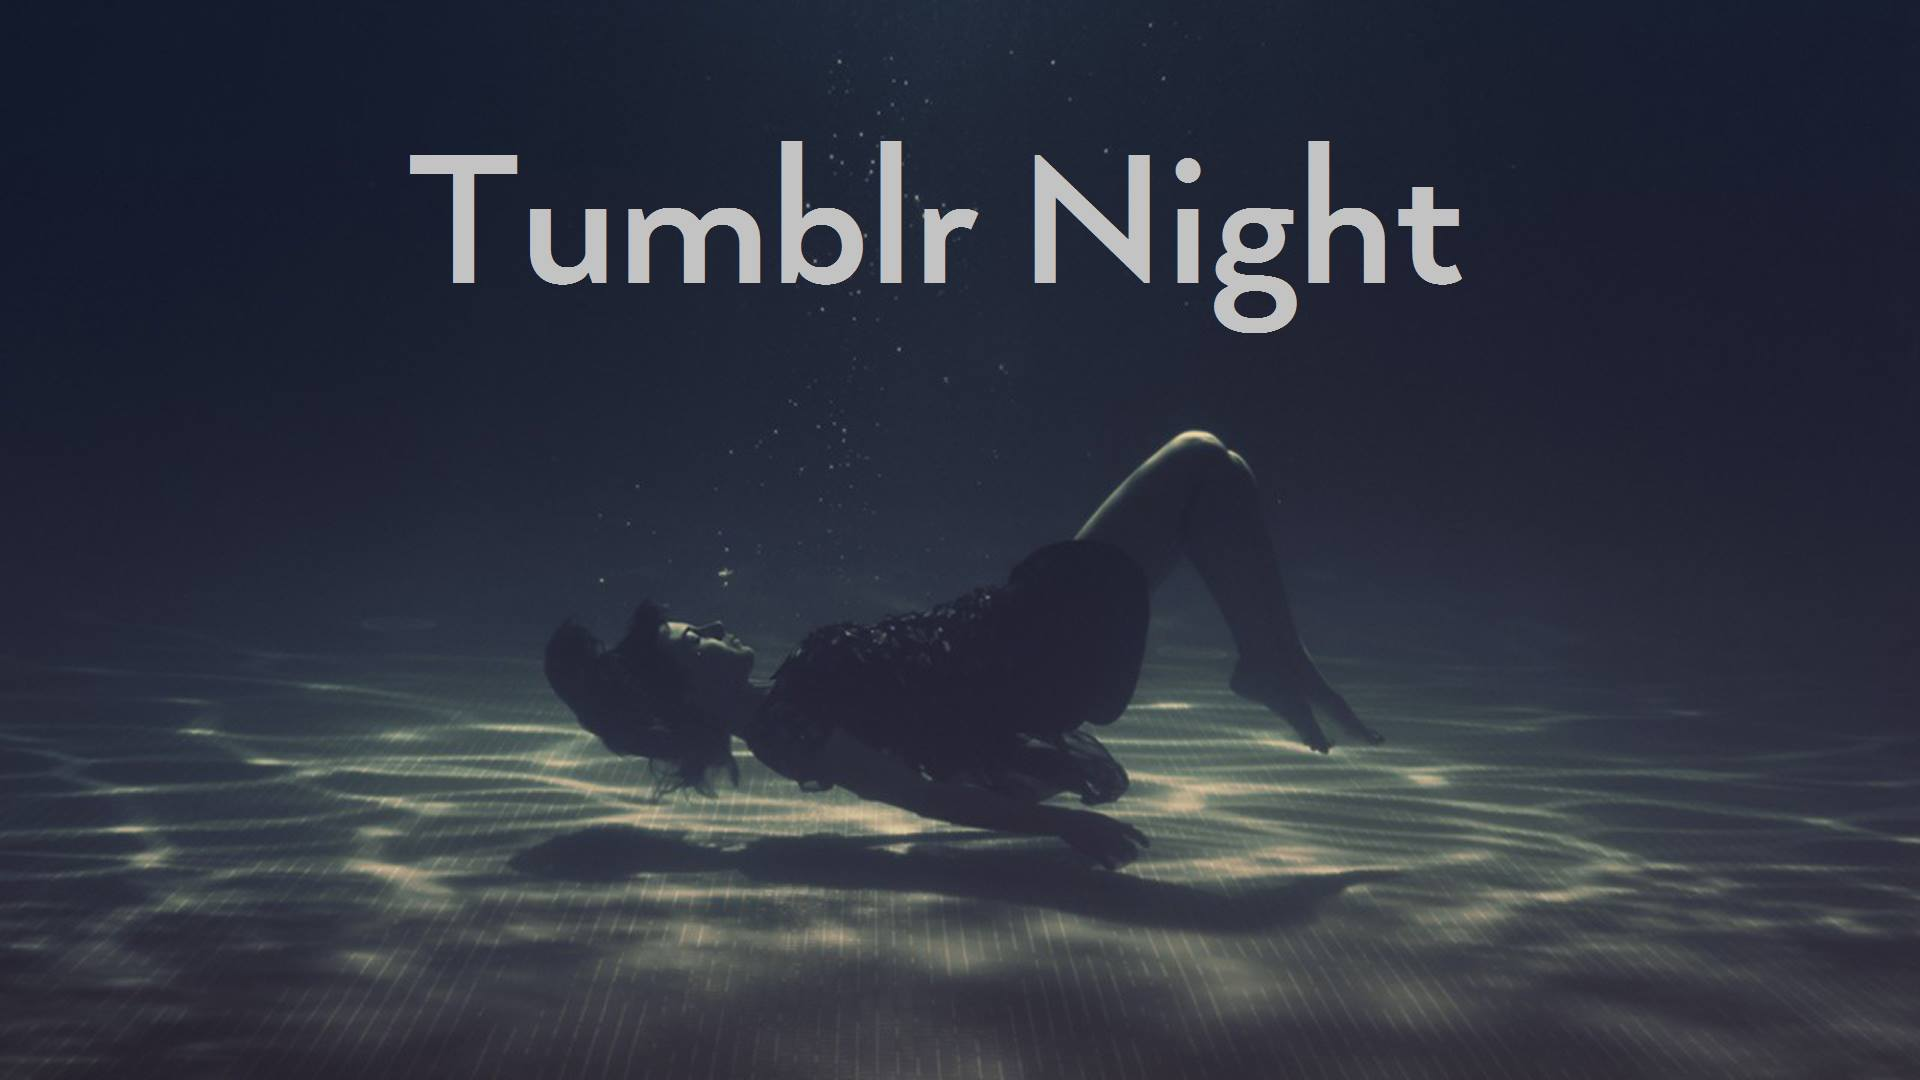 Tumblr Night